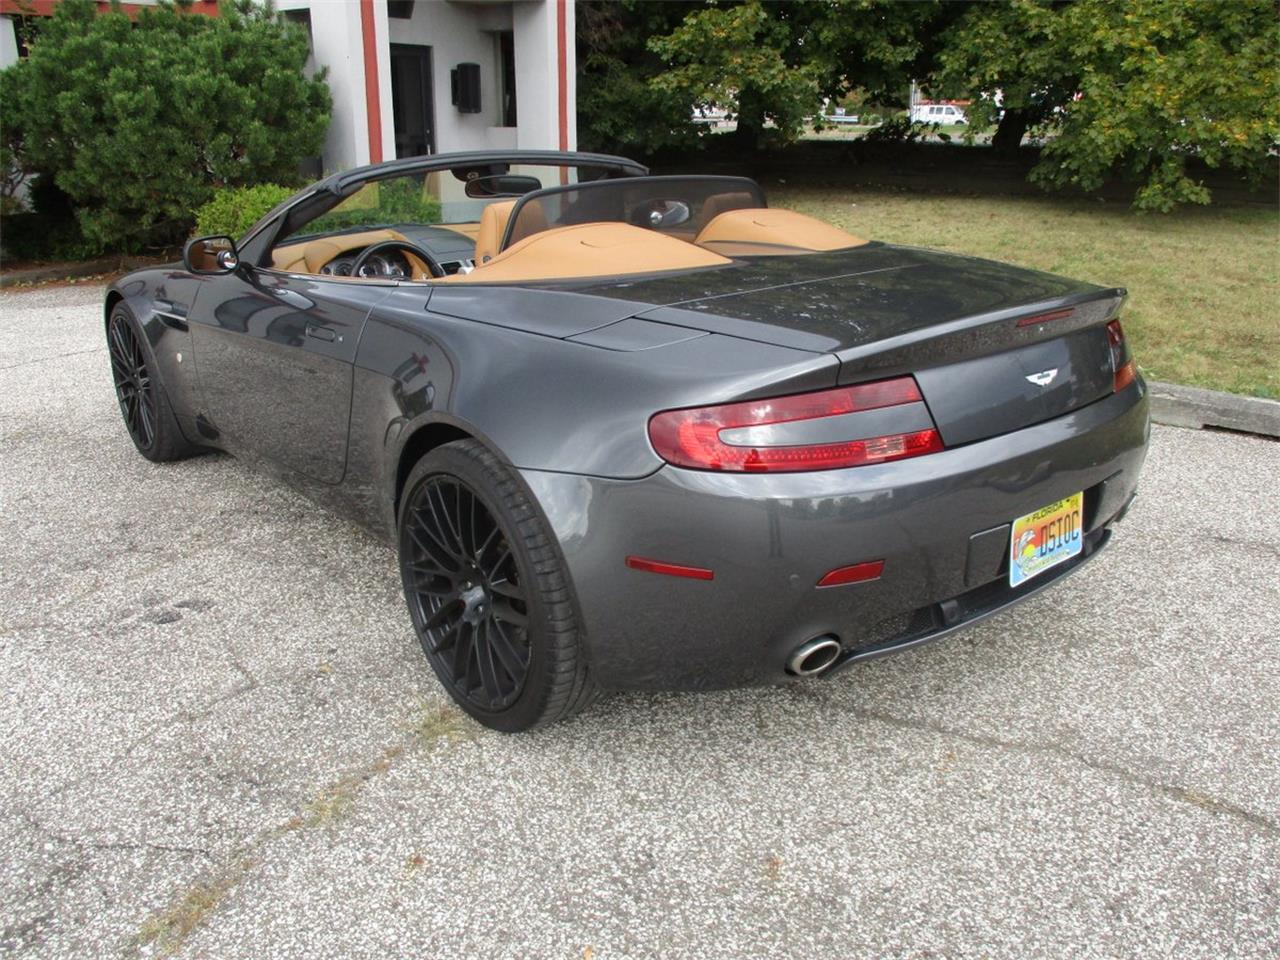 Large Picture of '09 Aston Martin V8 Vantage Roadster located in Ohio Offered by Vintage Motor Cars USA - M5PD